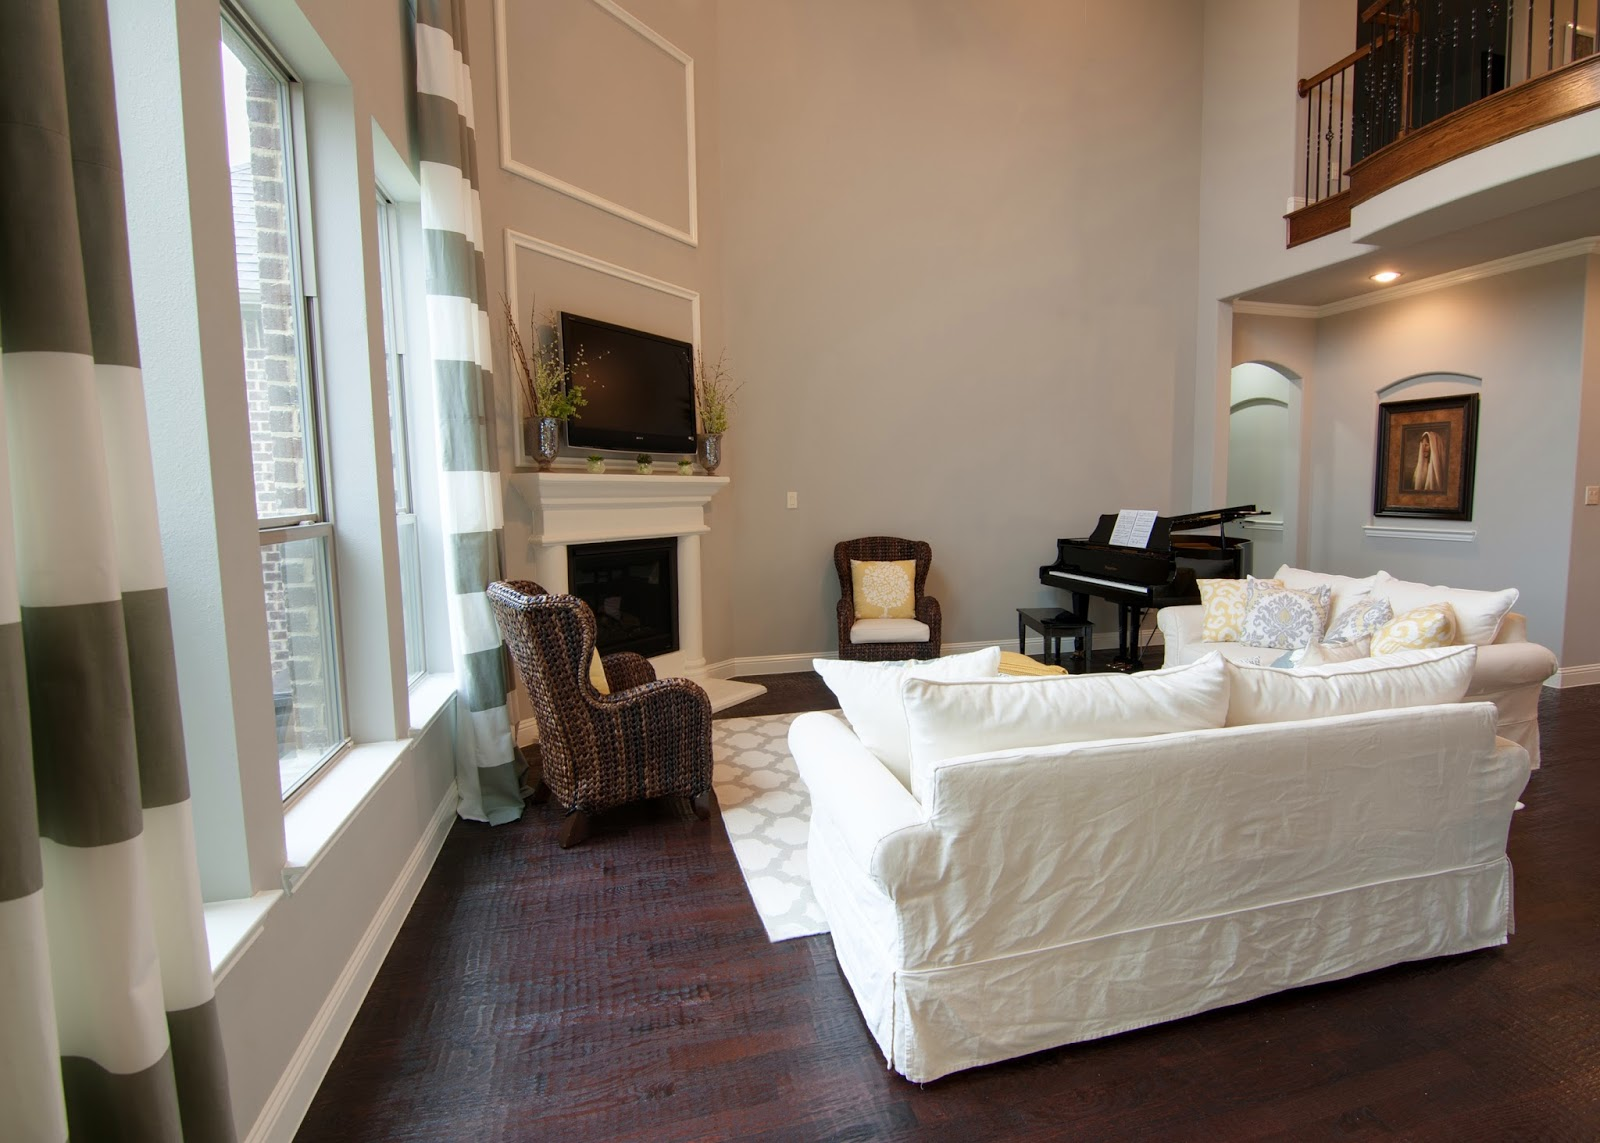 2 Story Great Room Decorating Ideas Part - 33: Decorating A Two Story Wall